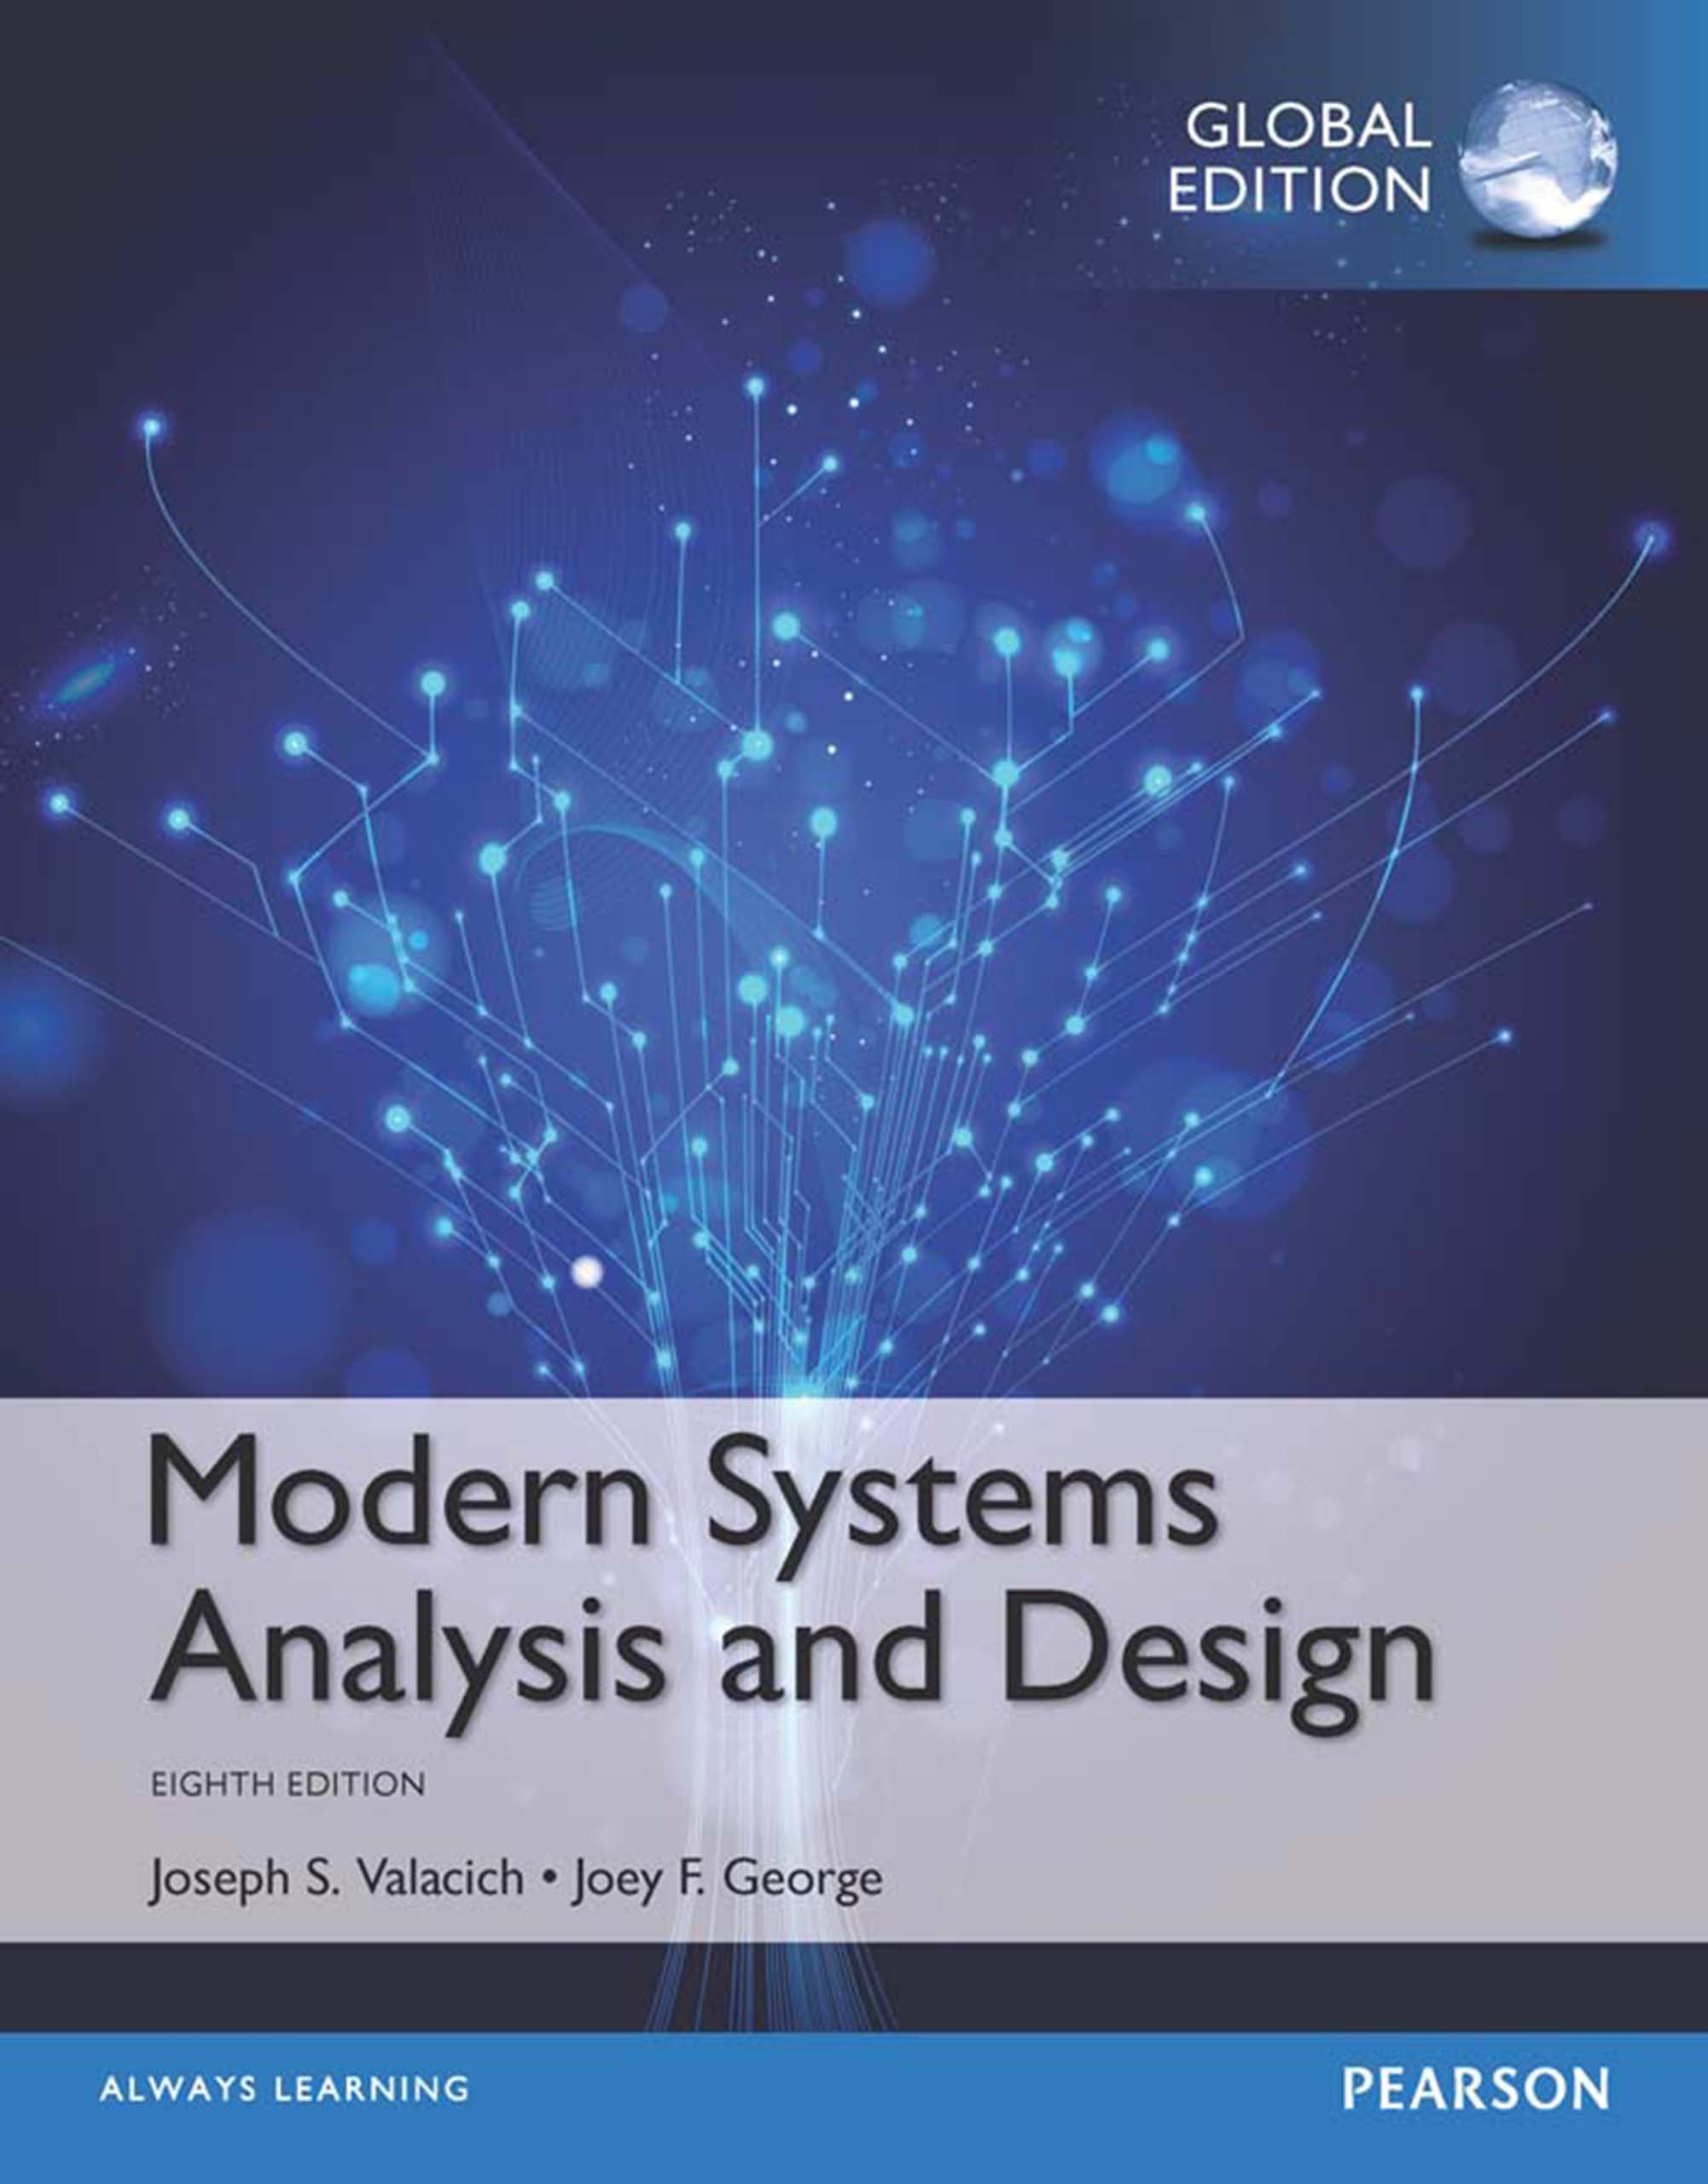 Modern Systems Analysis And Design Global Edition 8 Valacich Joseph S George Joey F Ebook Amazon Com